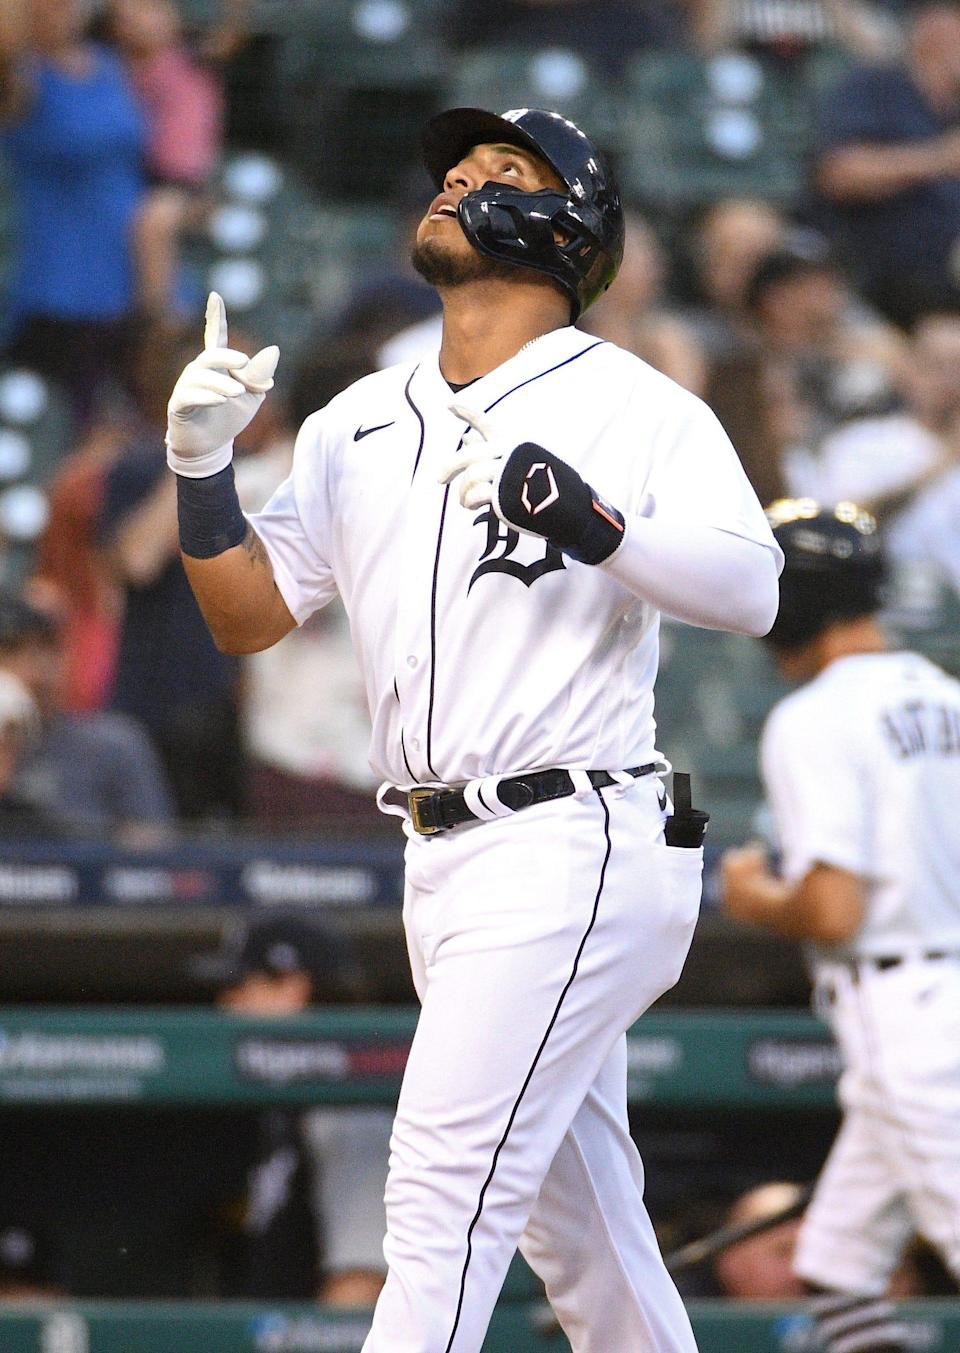 Tigers shortstop Isaac Paredes celebrates his home run against the White Sox during the fifth inning on Friday, June 11, 2021, at Comerica Park.